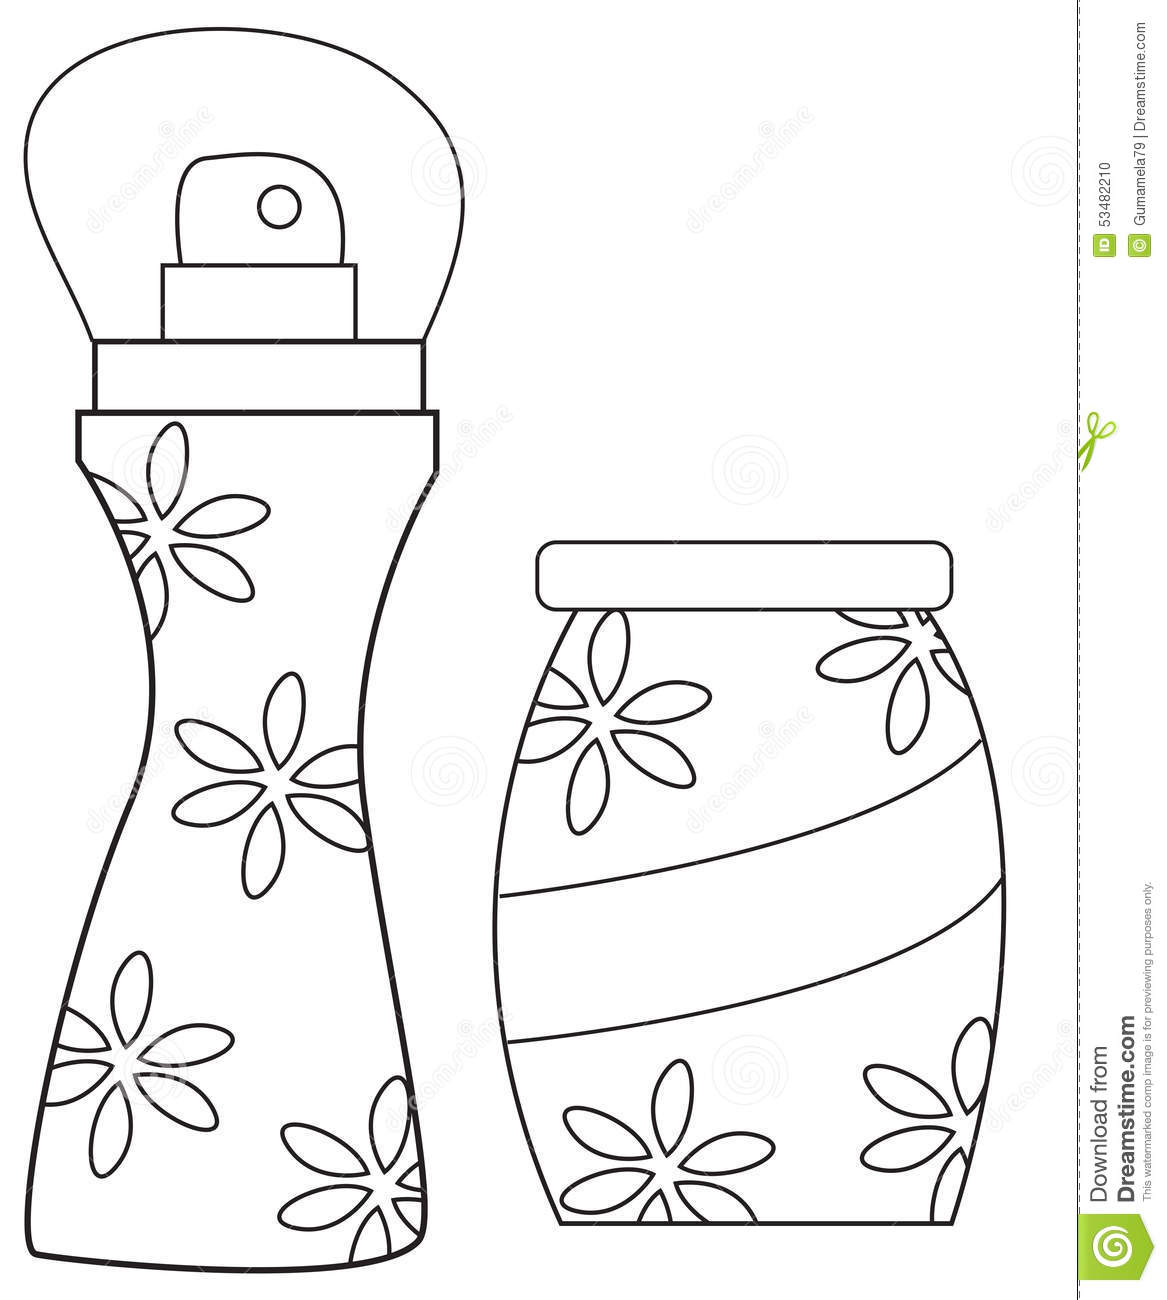 spray can coloring pages - photo#17